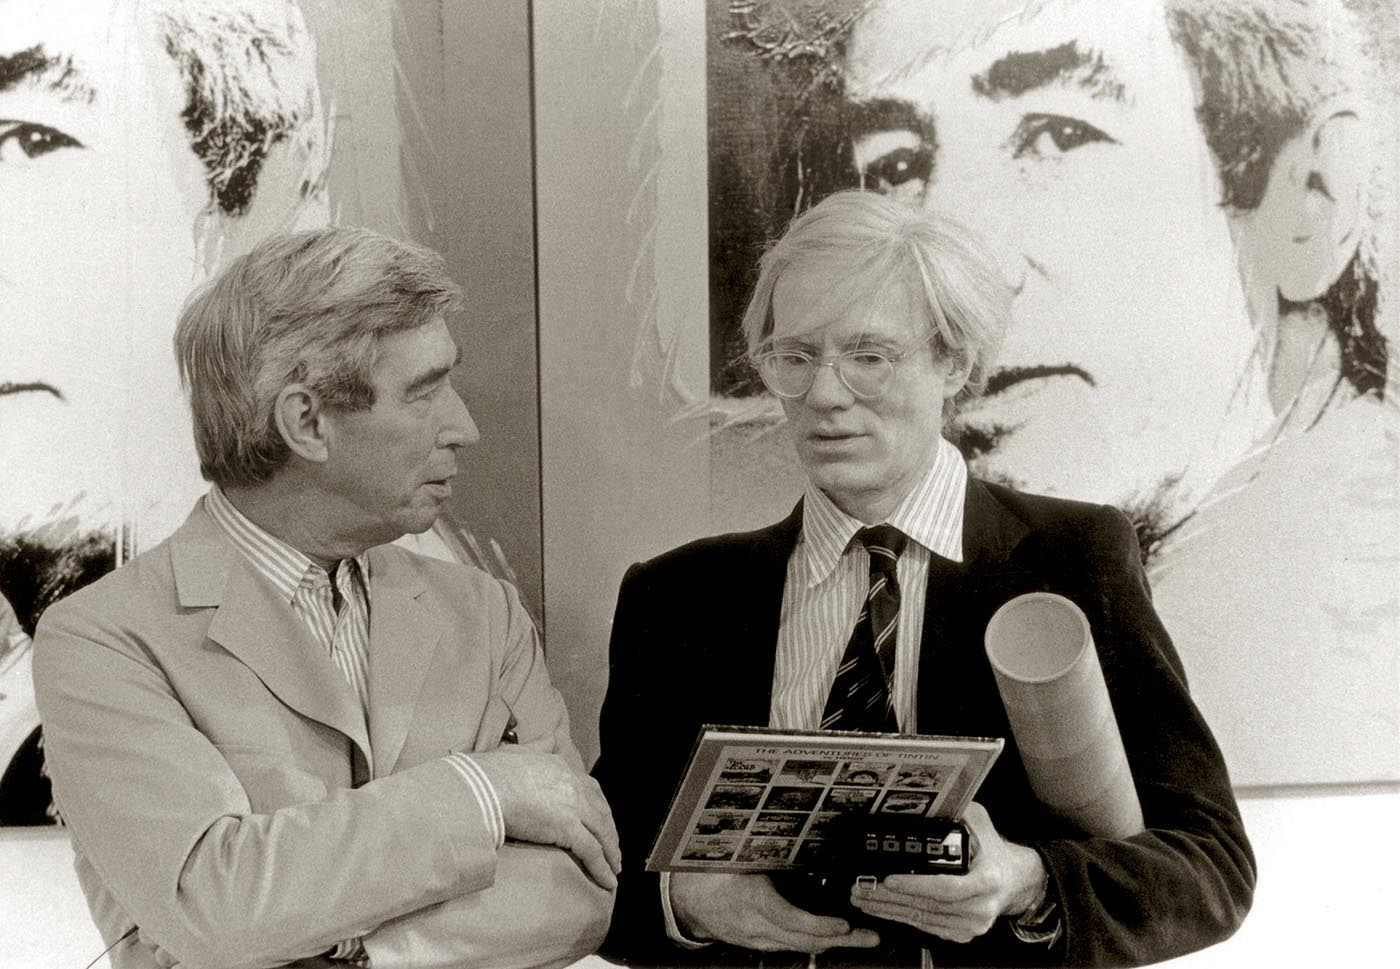 Hergé and Andy Warhol - Galerie D Brussels 1977